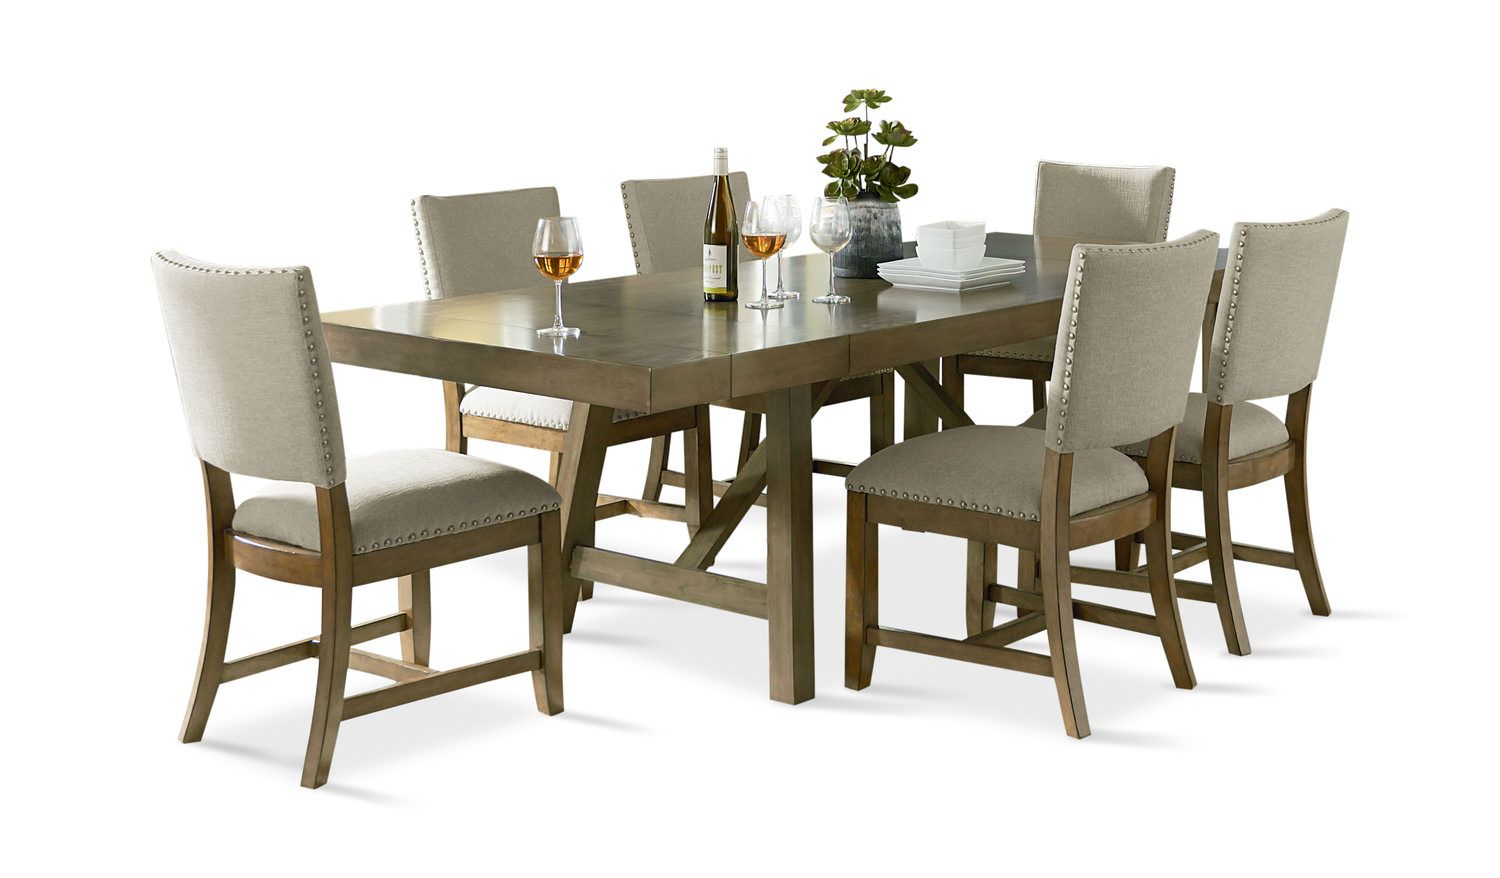 Omaha Dining Table With 9 Upholstered Chairs   HOM Furniture ...